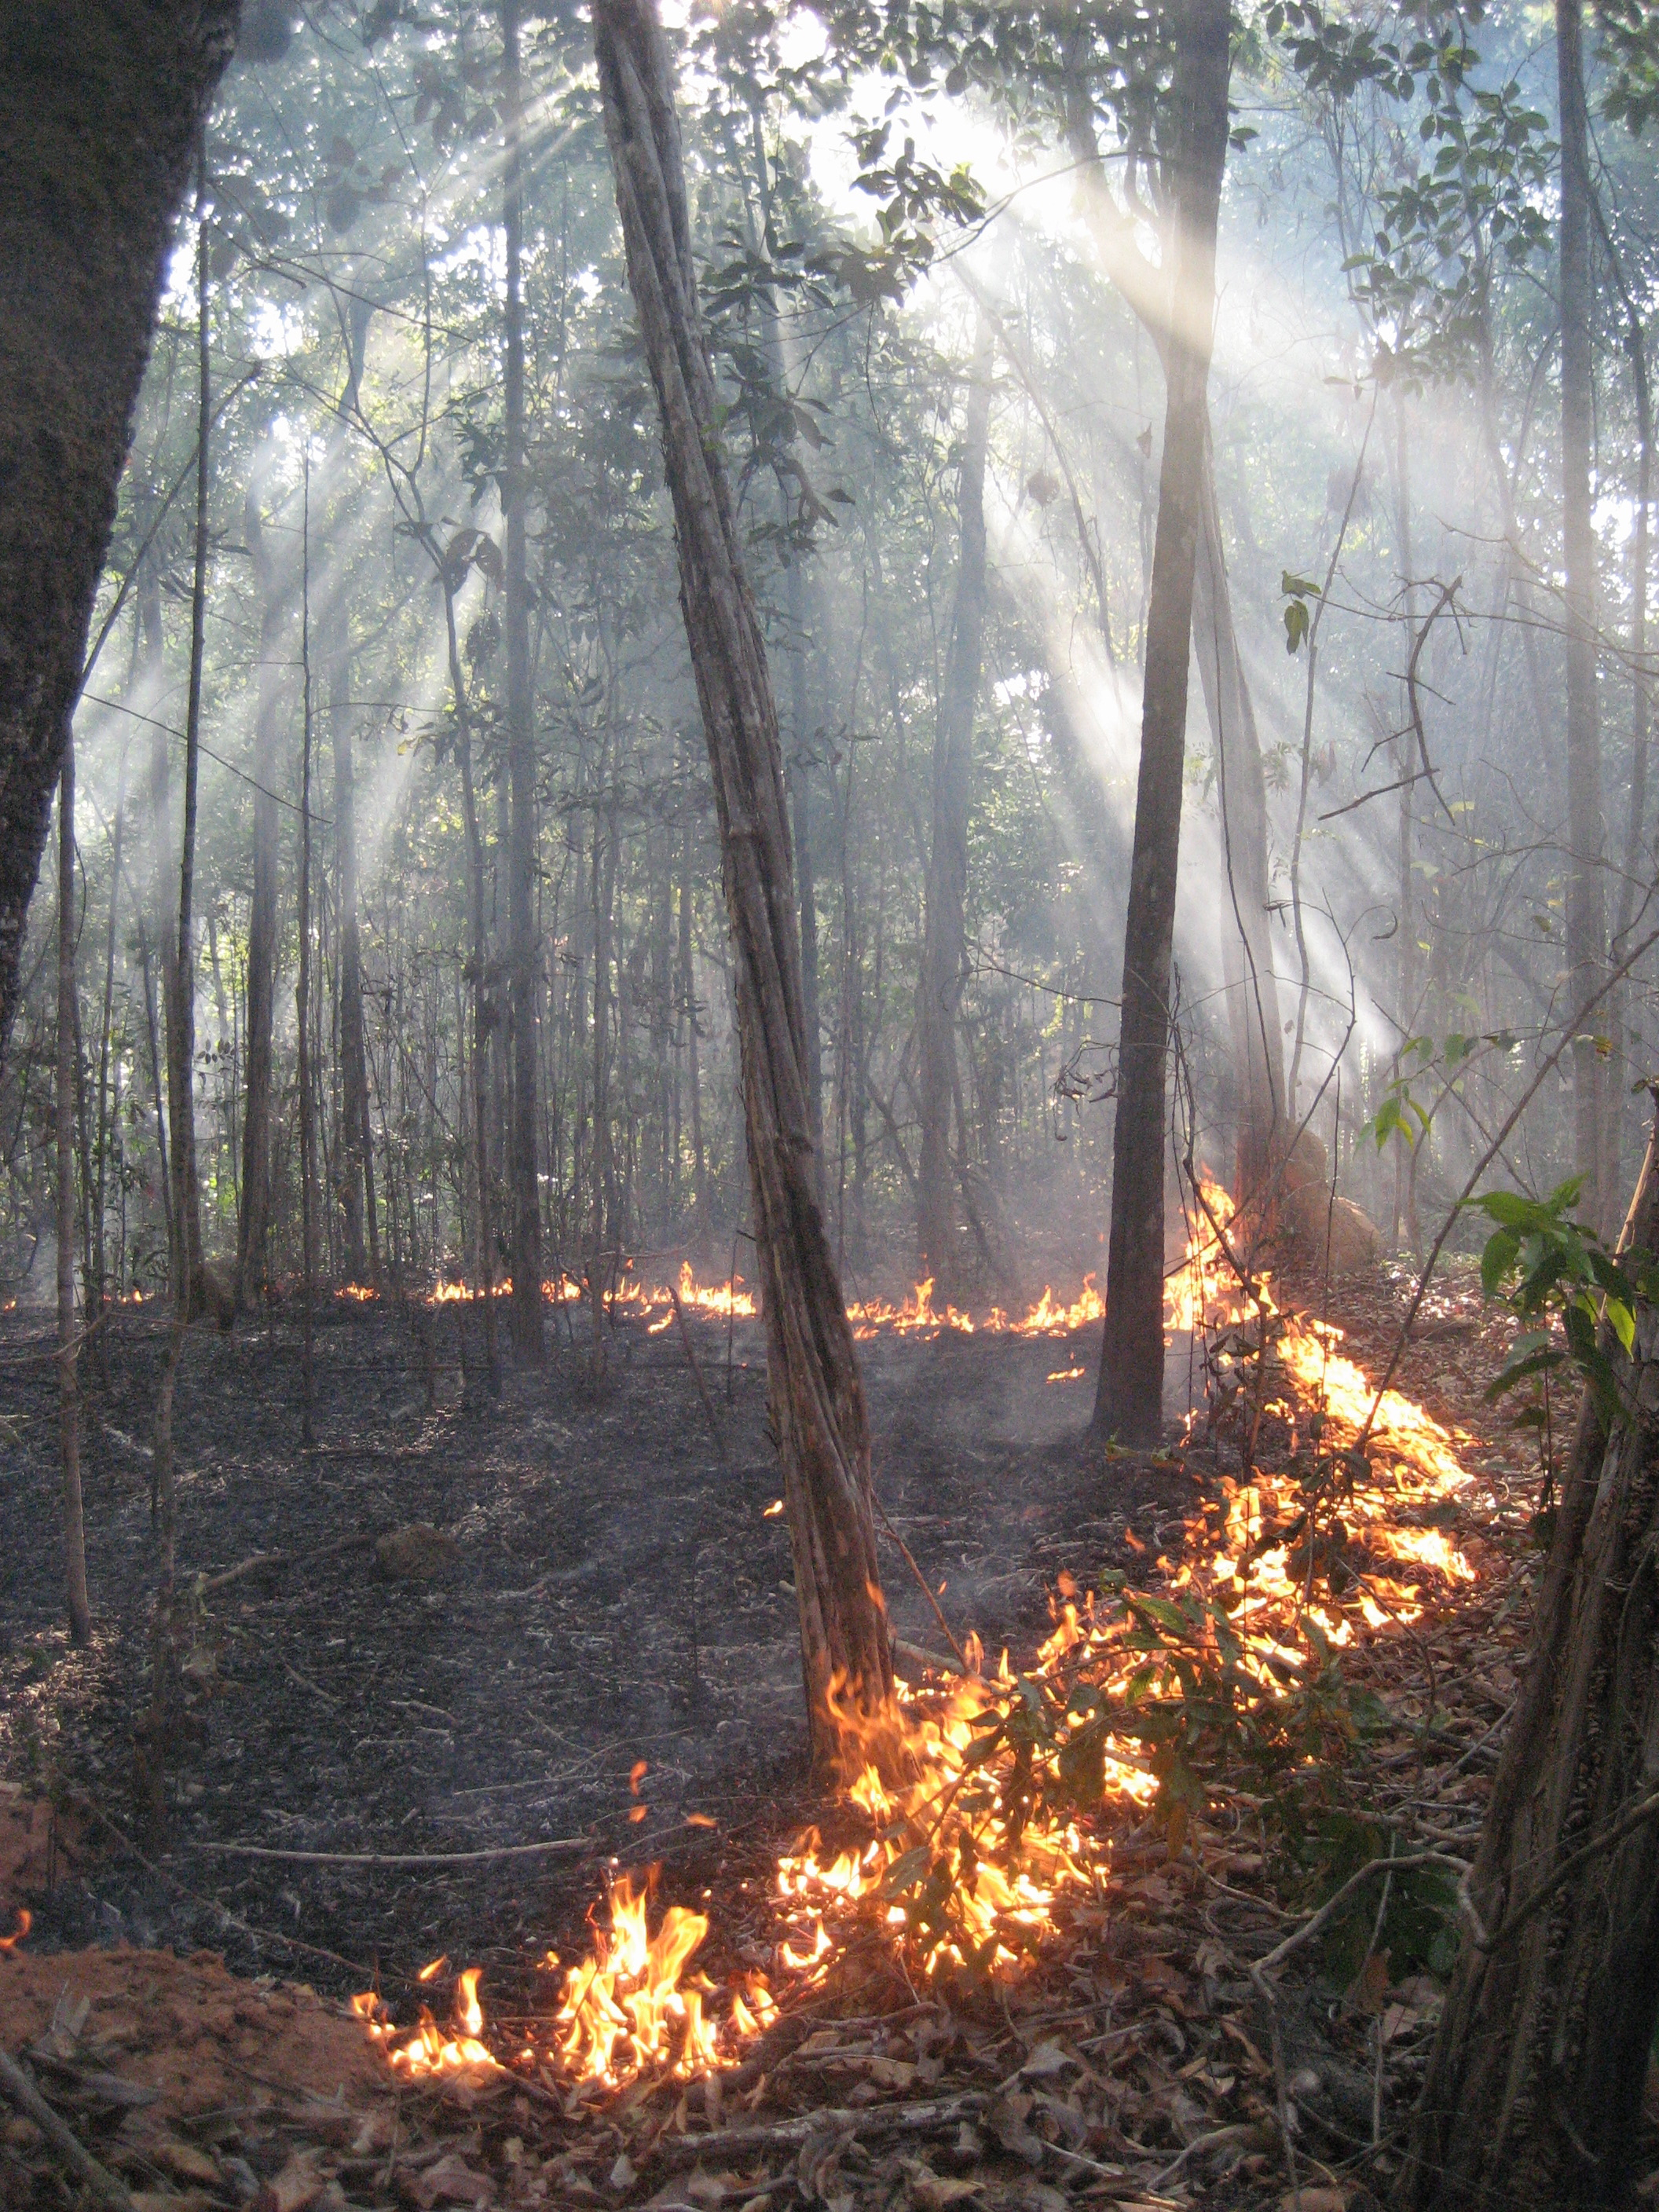 An experimental burn set by CU Earth Lab Director Jennifer Balch and her team on the southern border of the Amazon rainforest in 2006.